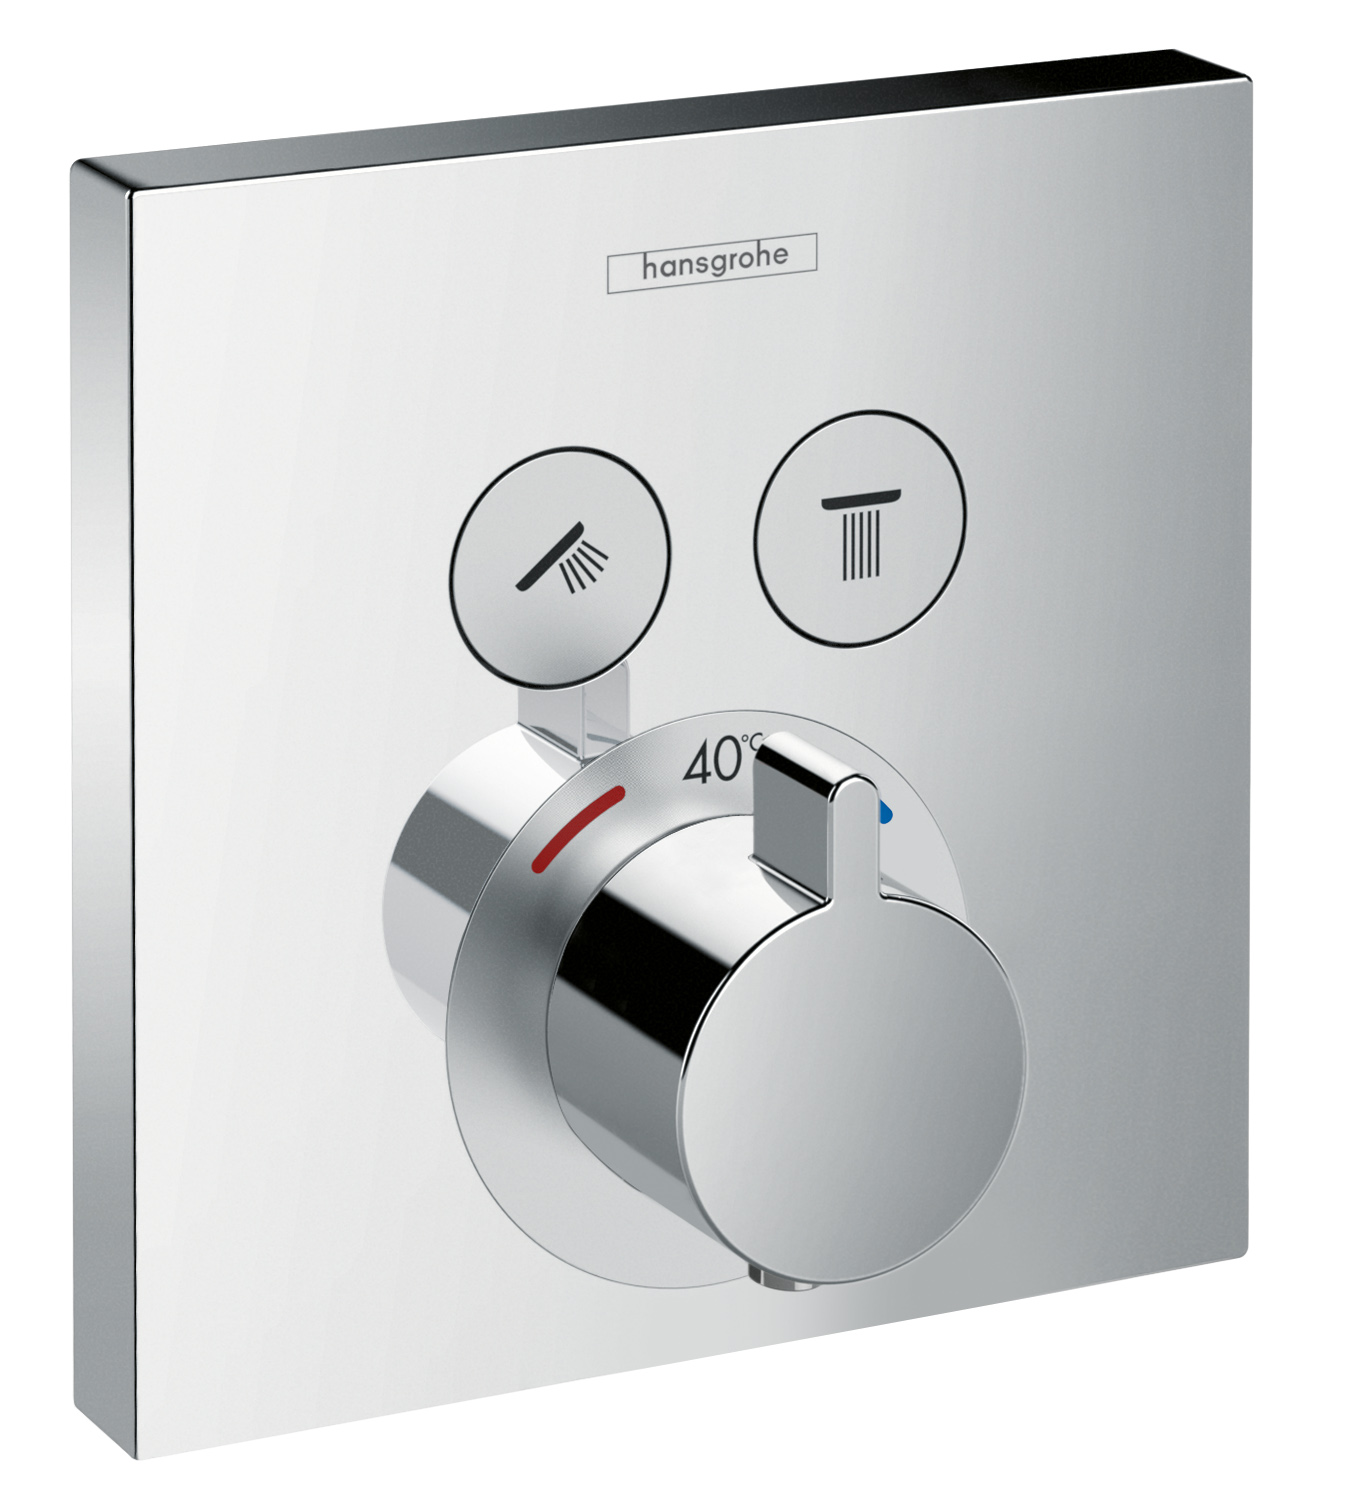 Hansgrohe_ShowerSelect_ConcealedThermostat_HandShower_OverheadShower